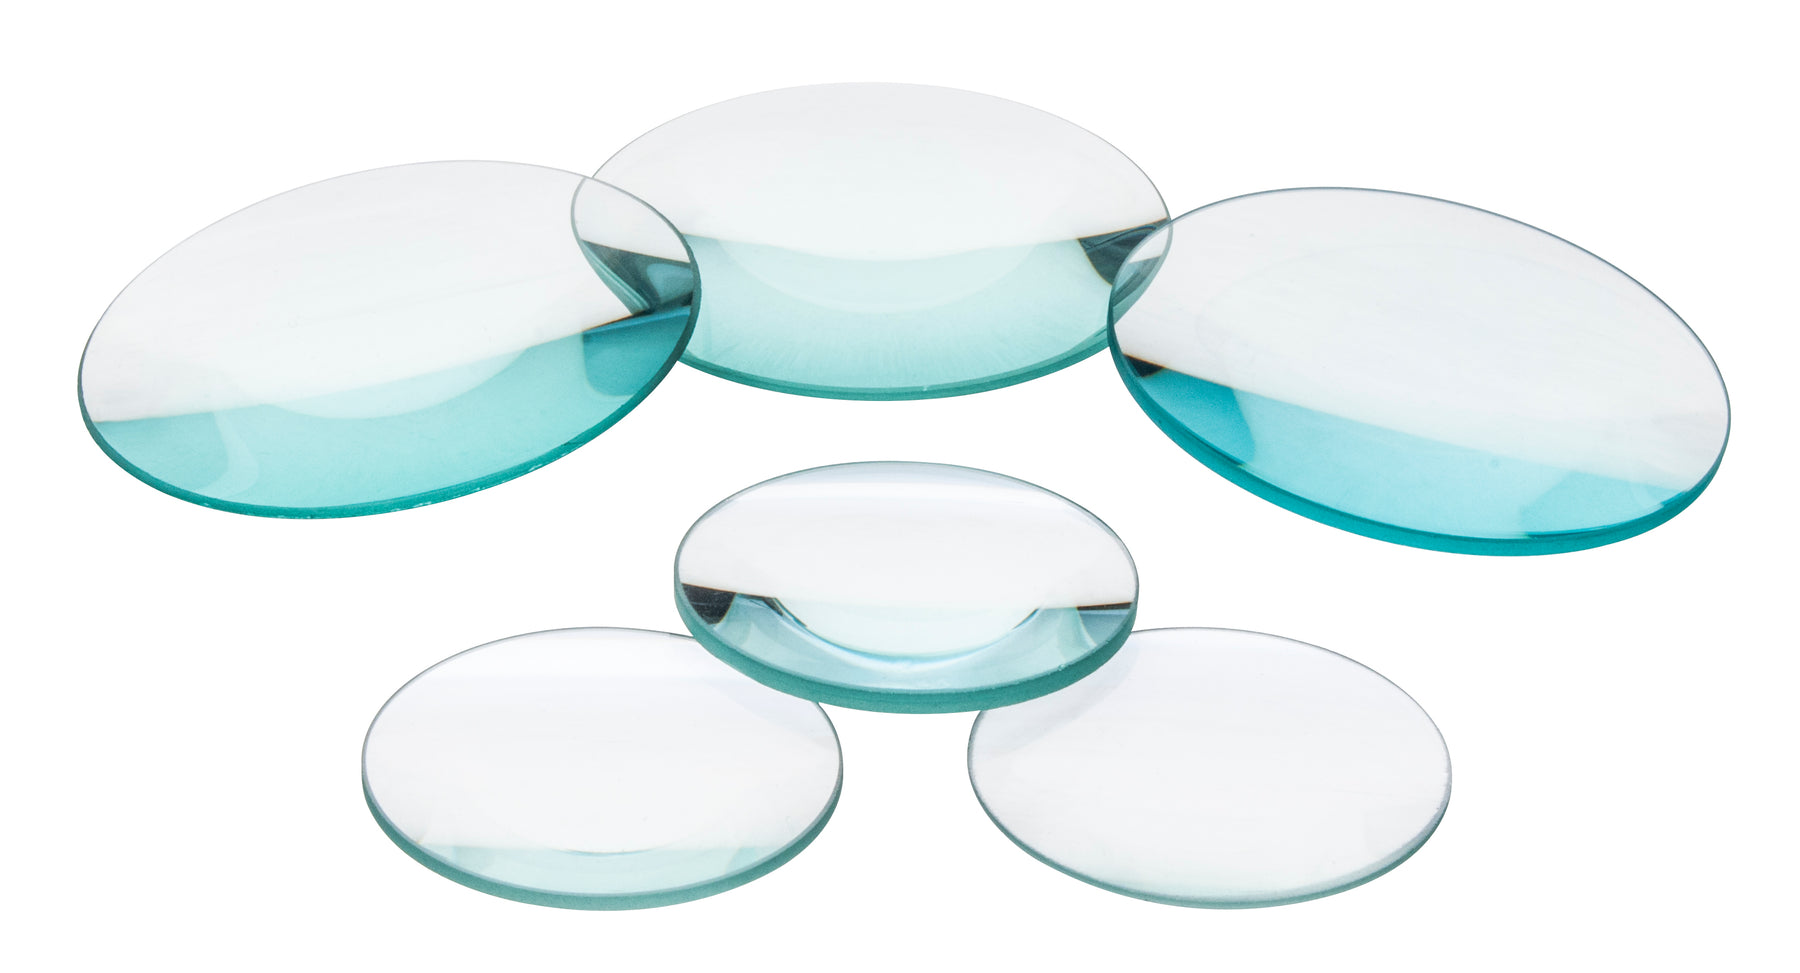 Glass Lenses - Double Convex & Concave, Dia - 50 mm, F.L. - 1000 mm